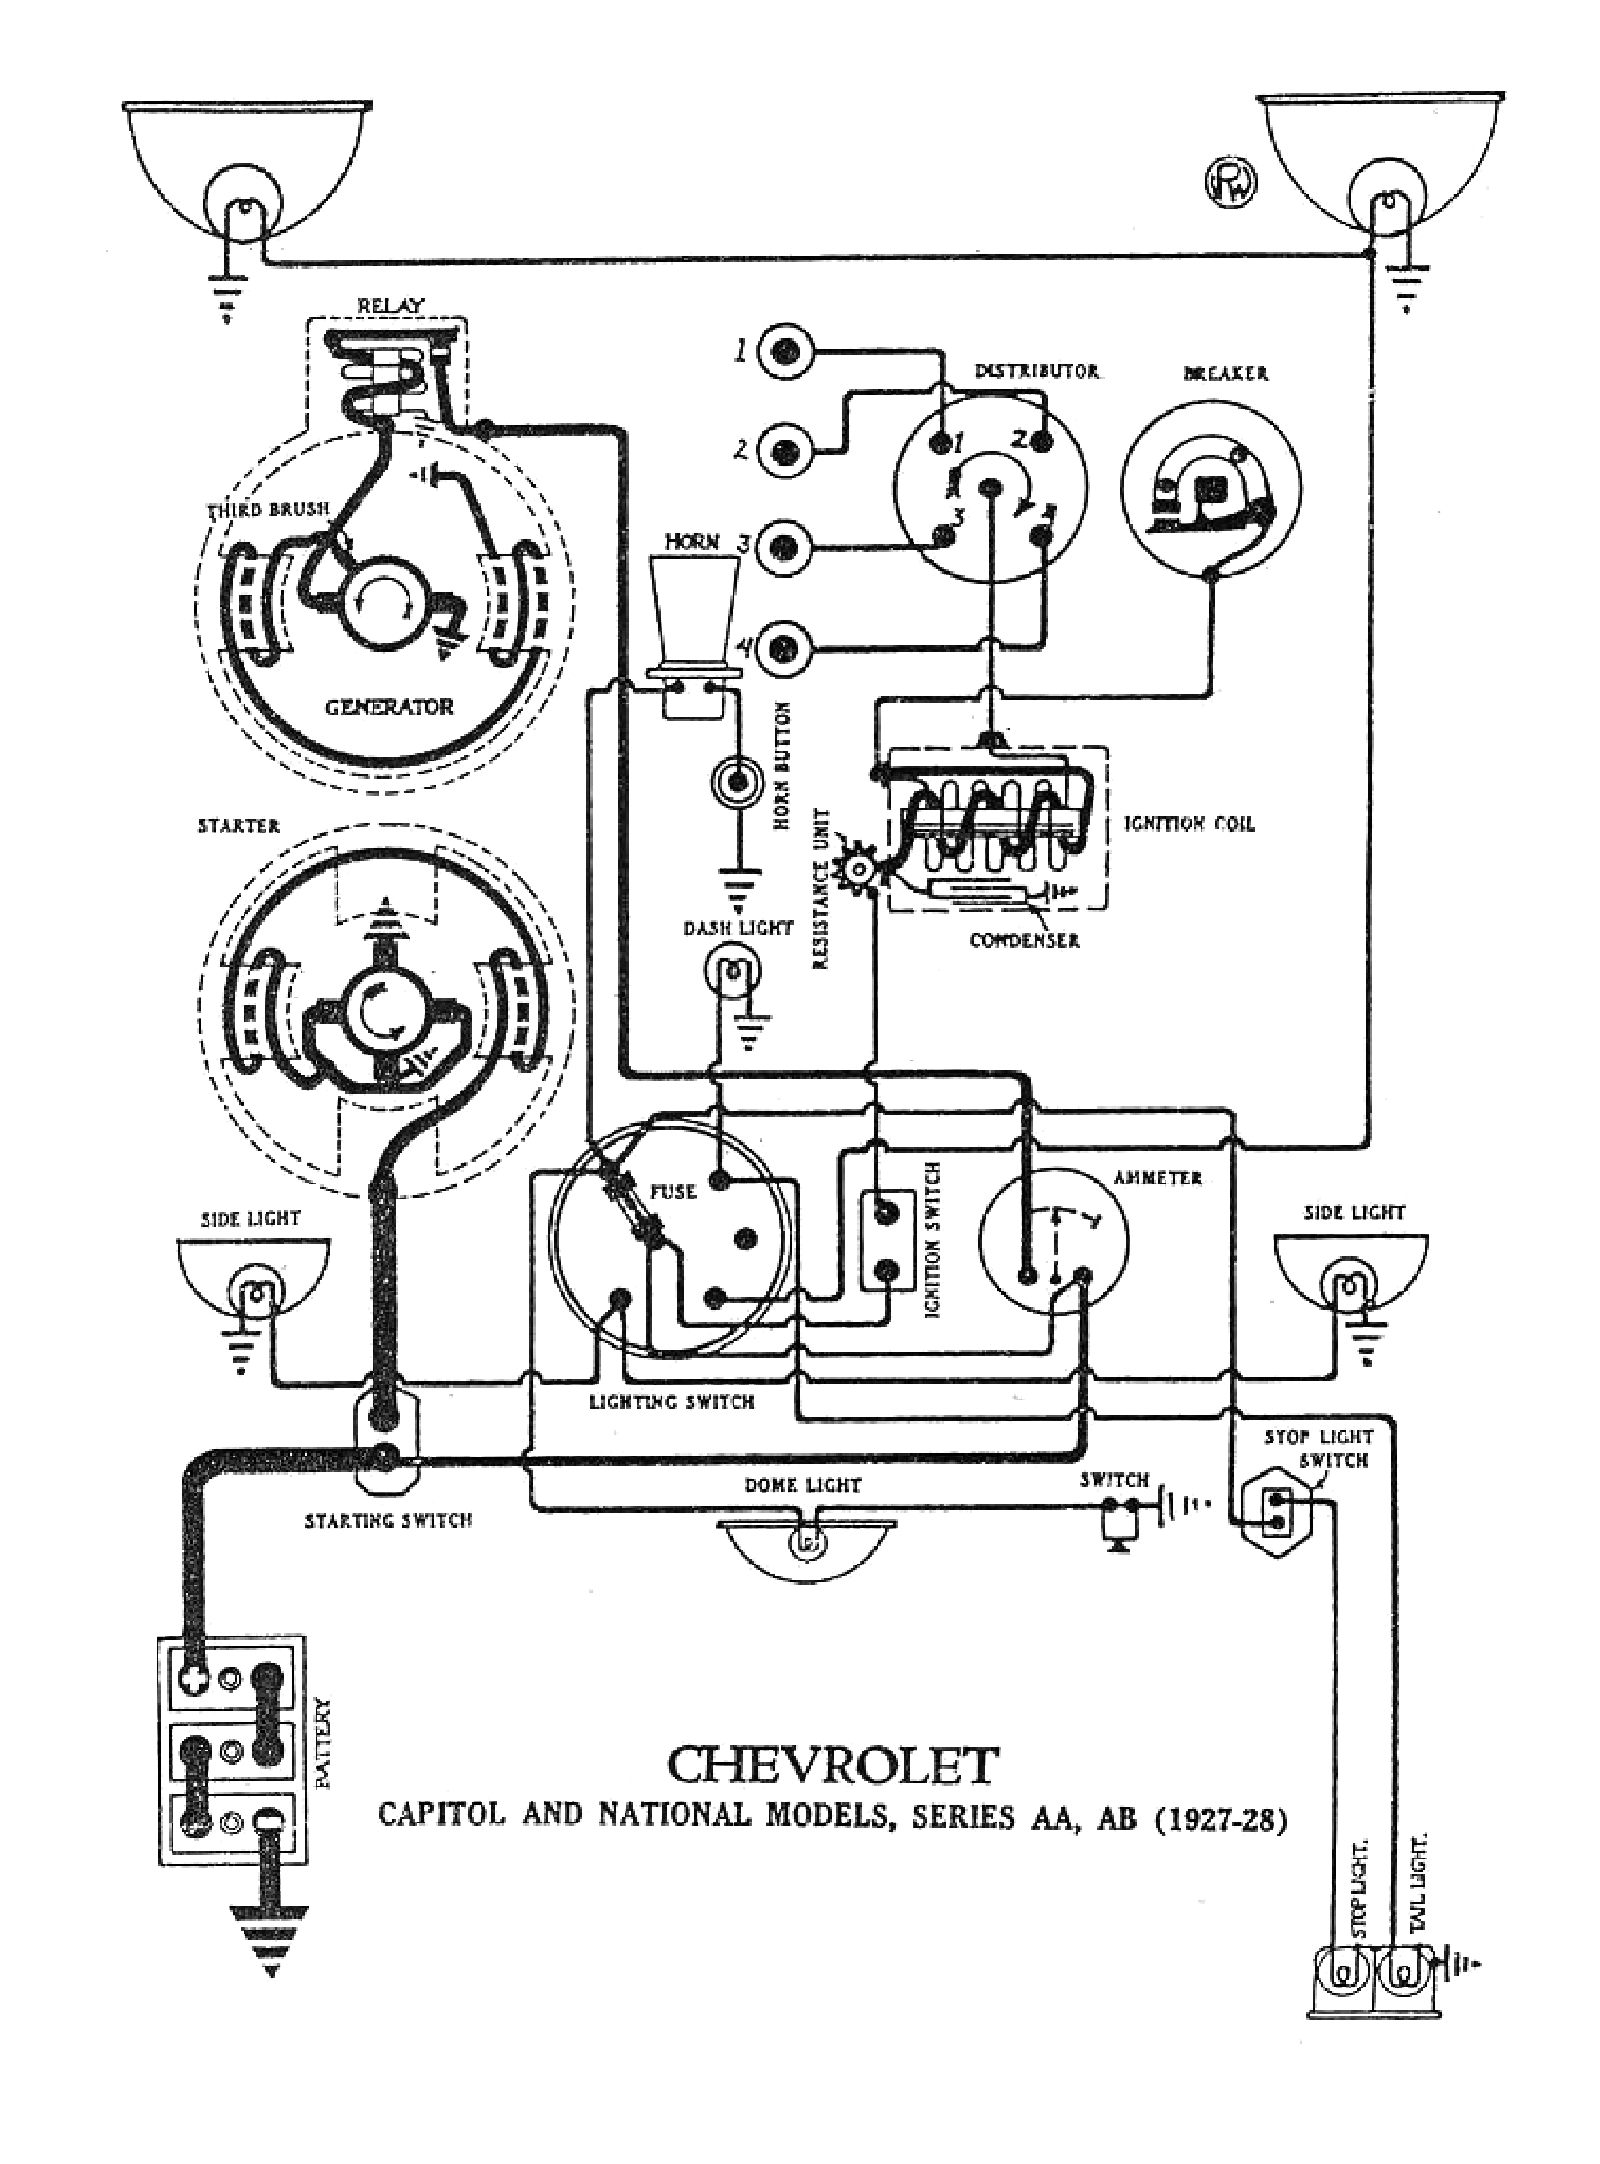 2728wiring chevy wiring diagrams 1953 Ford Car Wiring Diagram at crackthecode.co